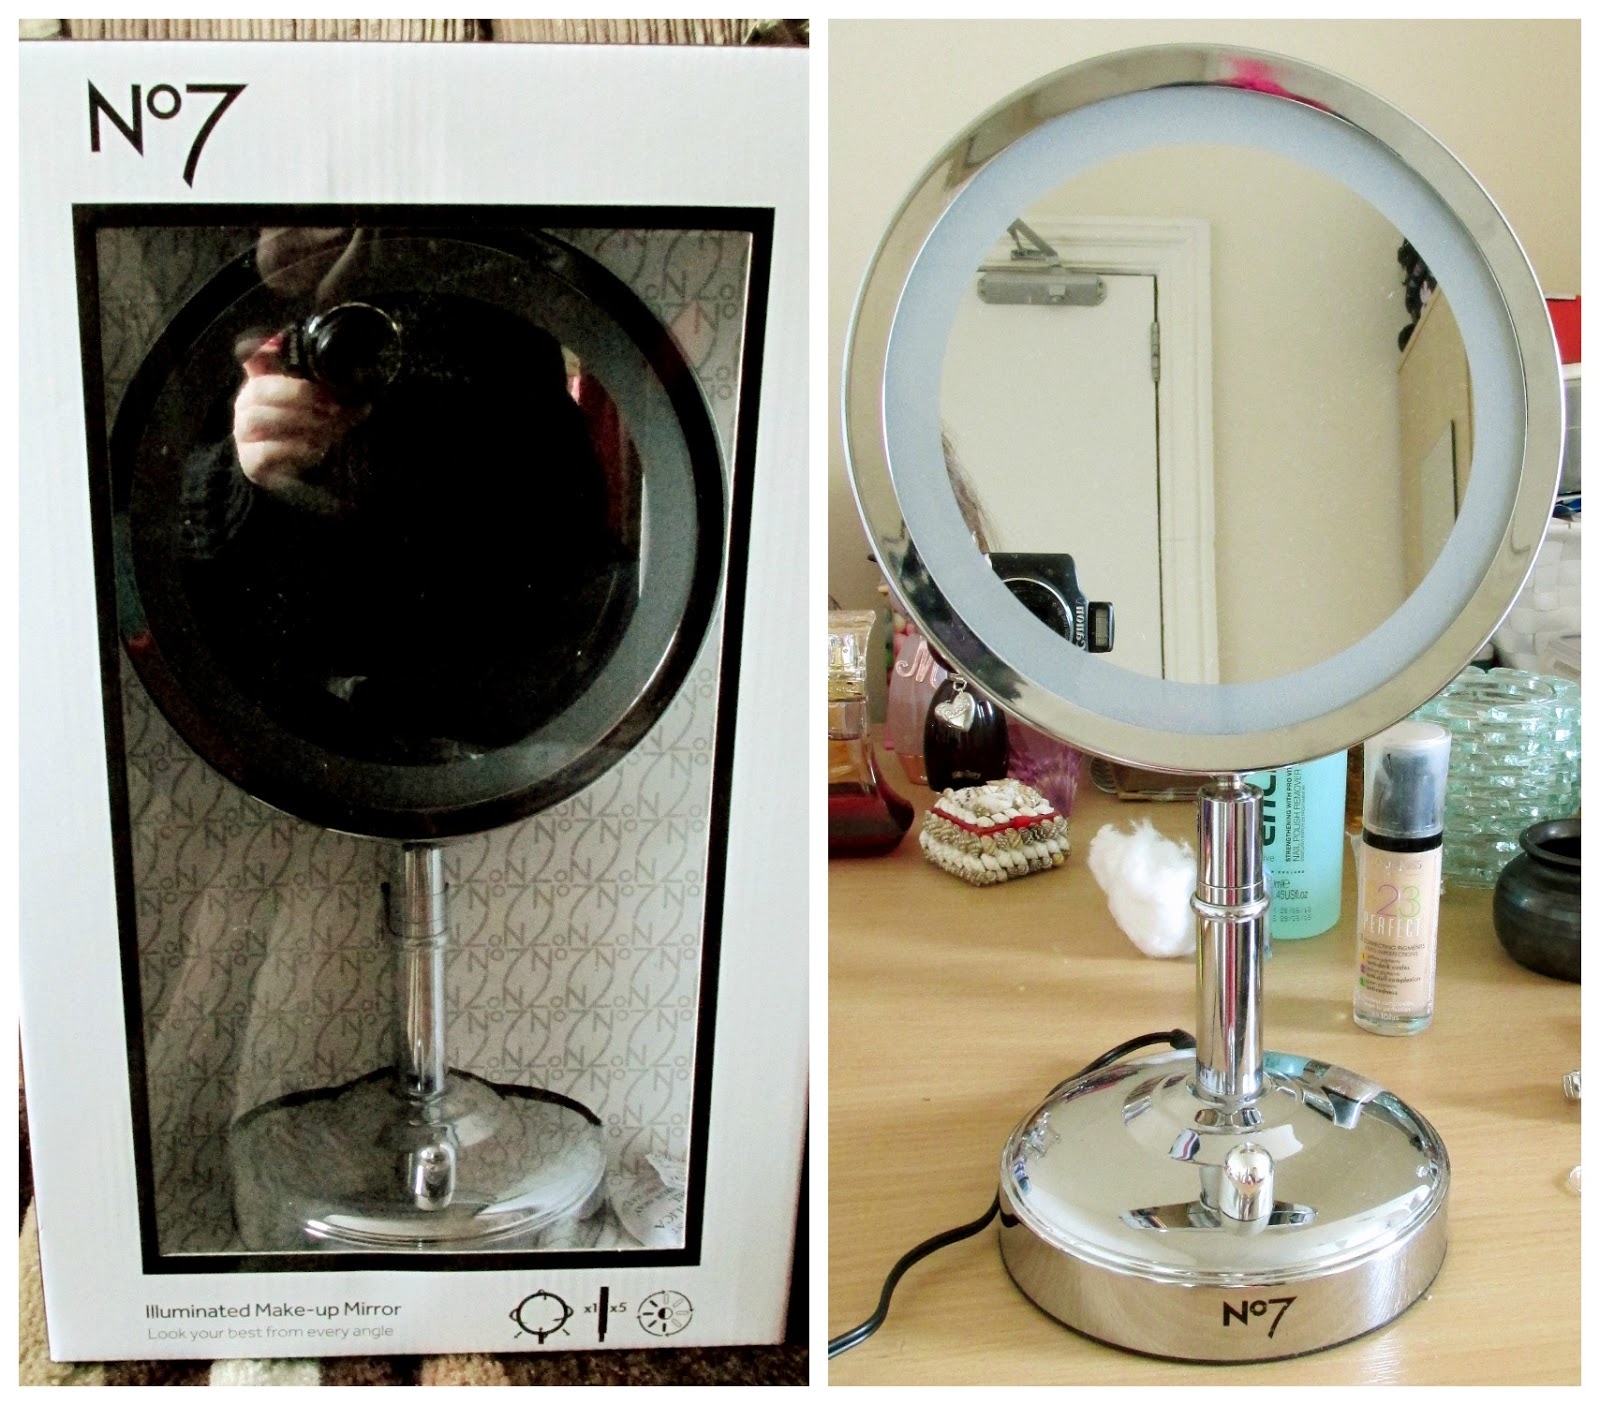 abigail 39 s world my 100th post no 7 2014 illuminated make up mirror review. Black Bedroom Furniture Sets. Home Design Ideas